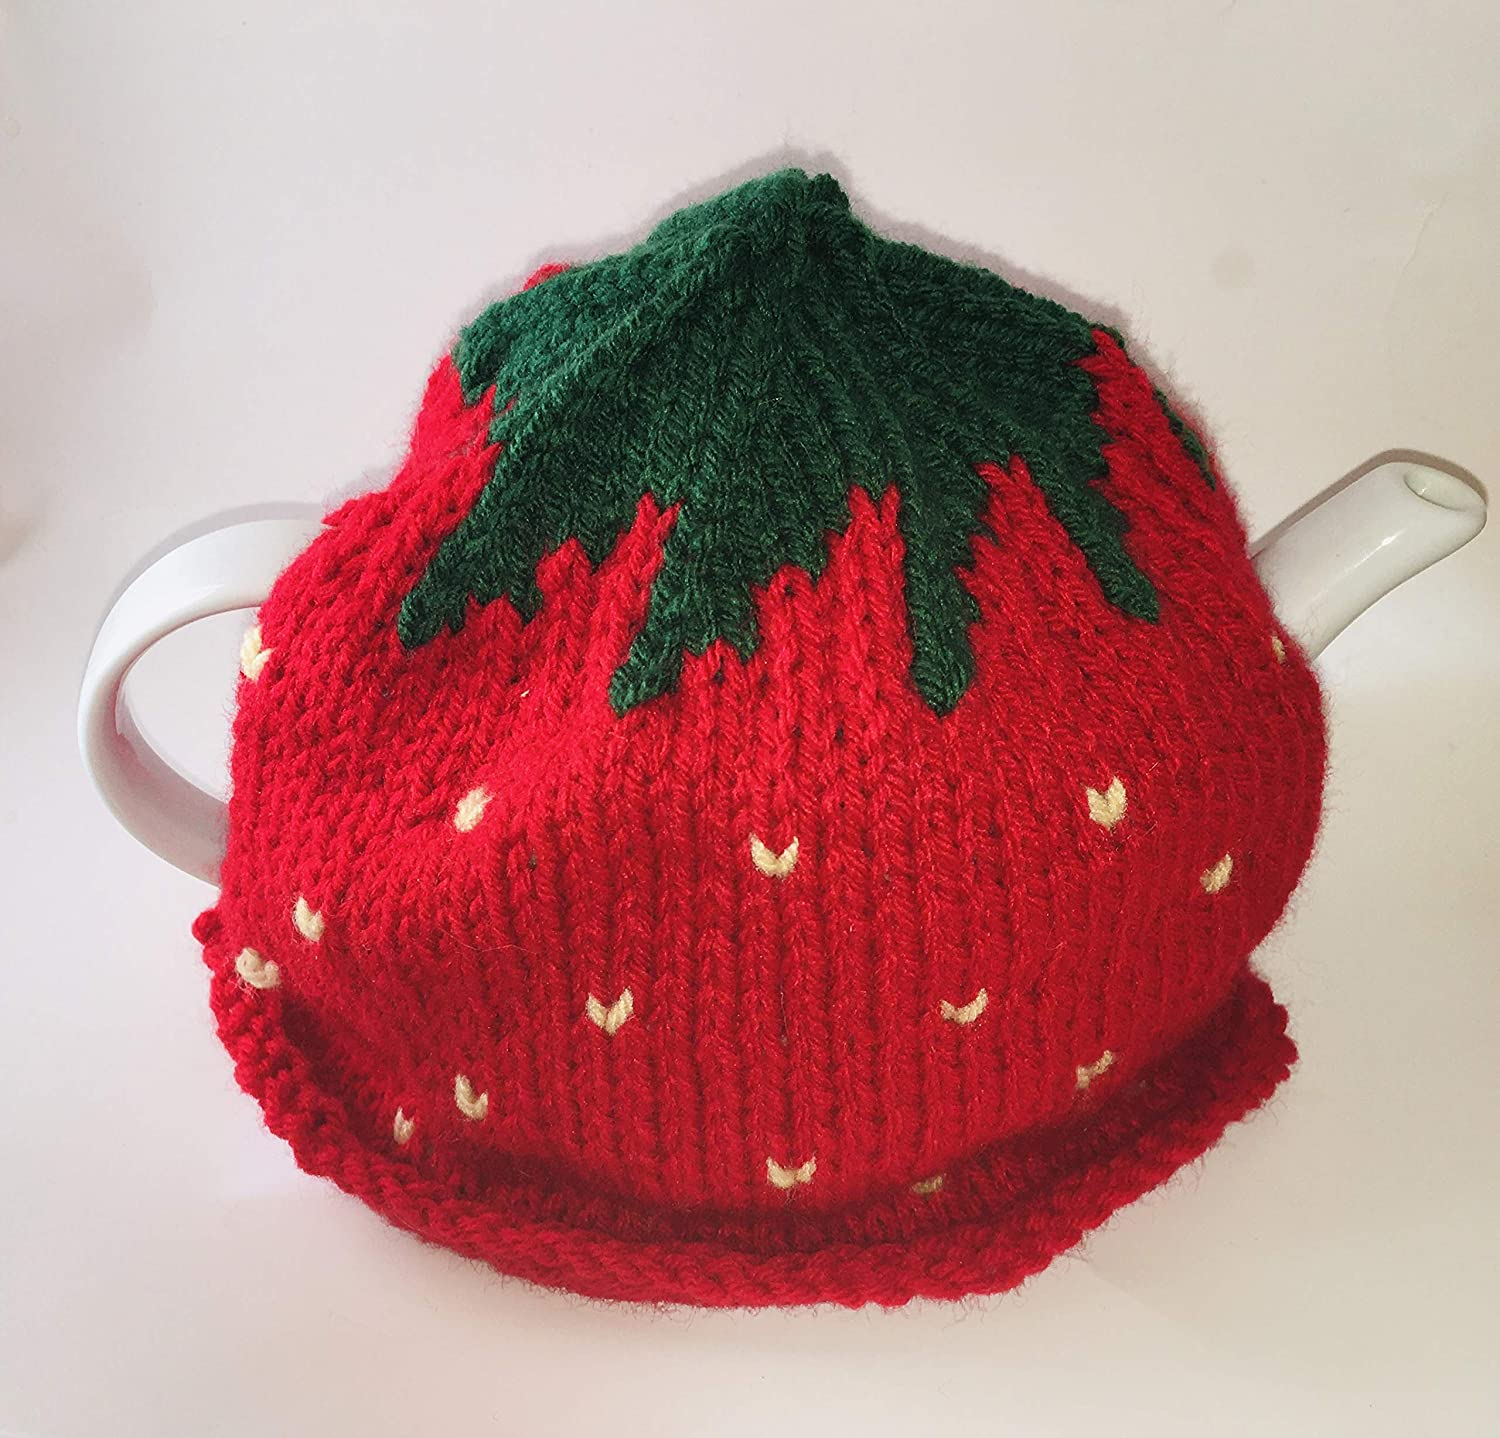 Strawberry Tea Sale SALE% OFF Cozy Knitted Hand Memphis Mall Teapot